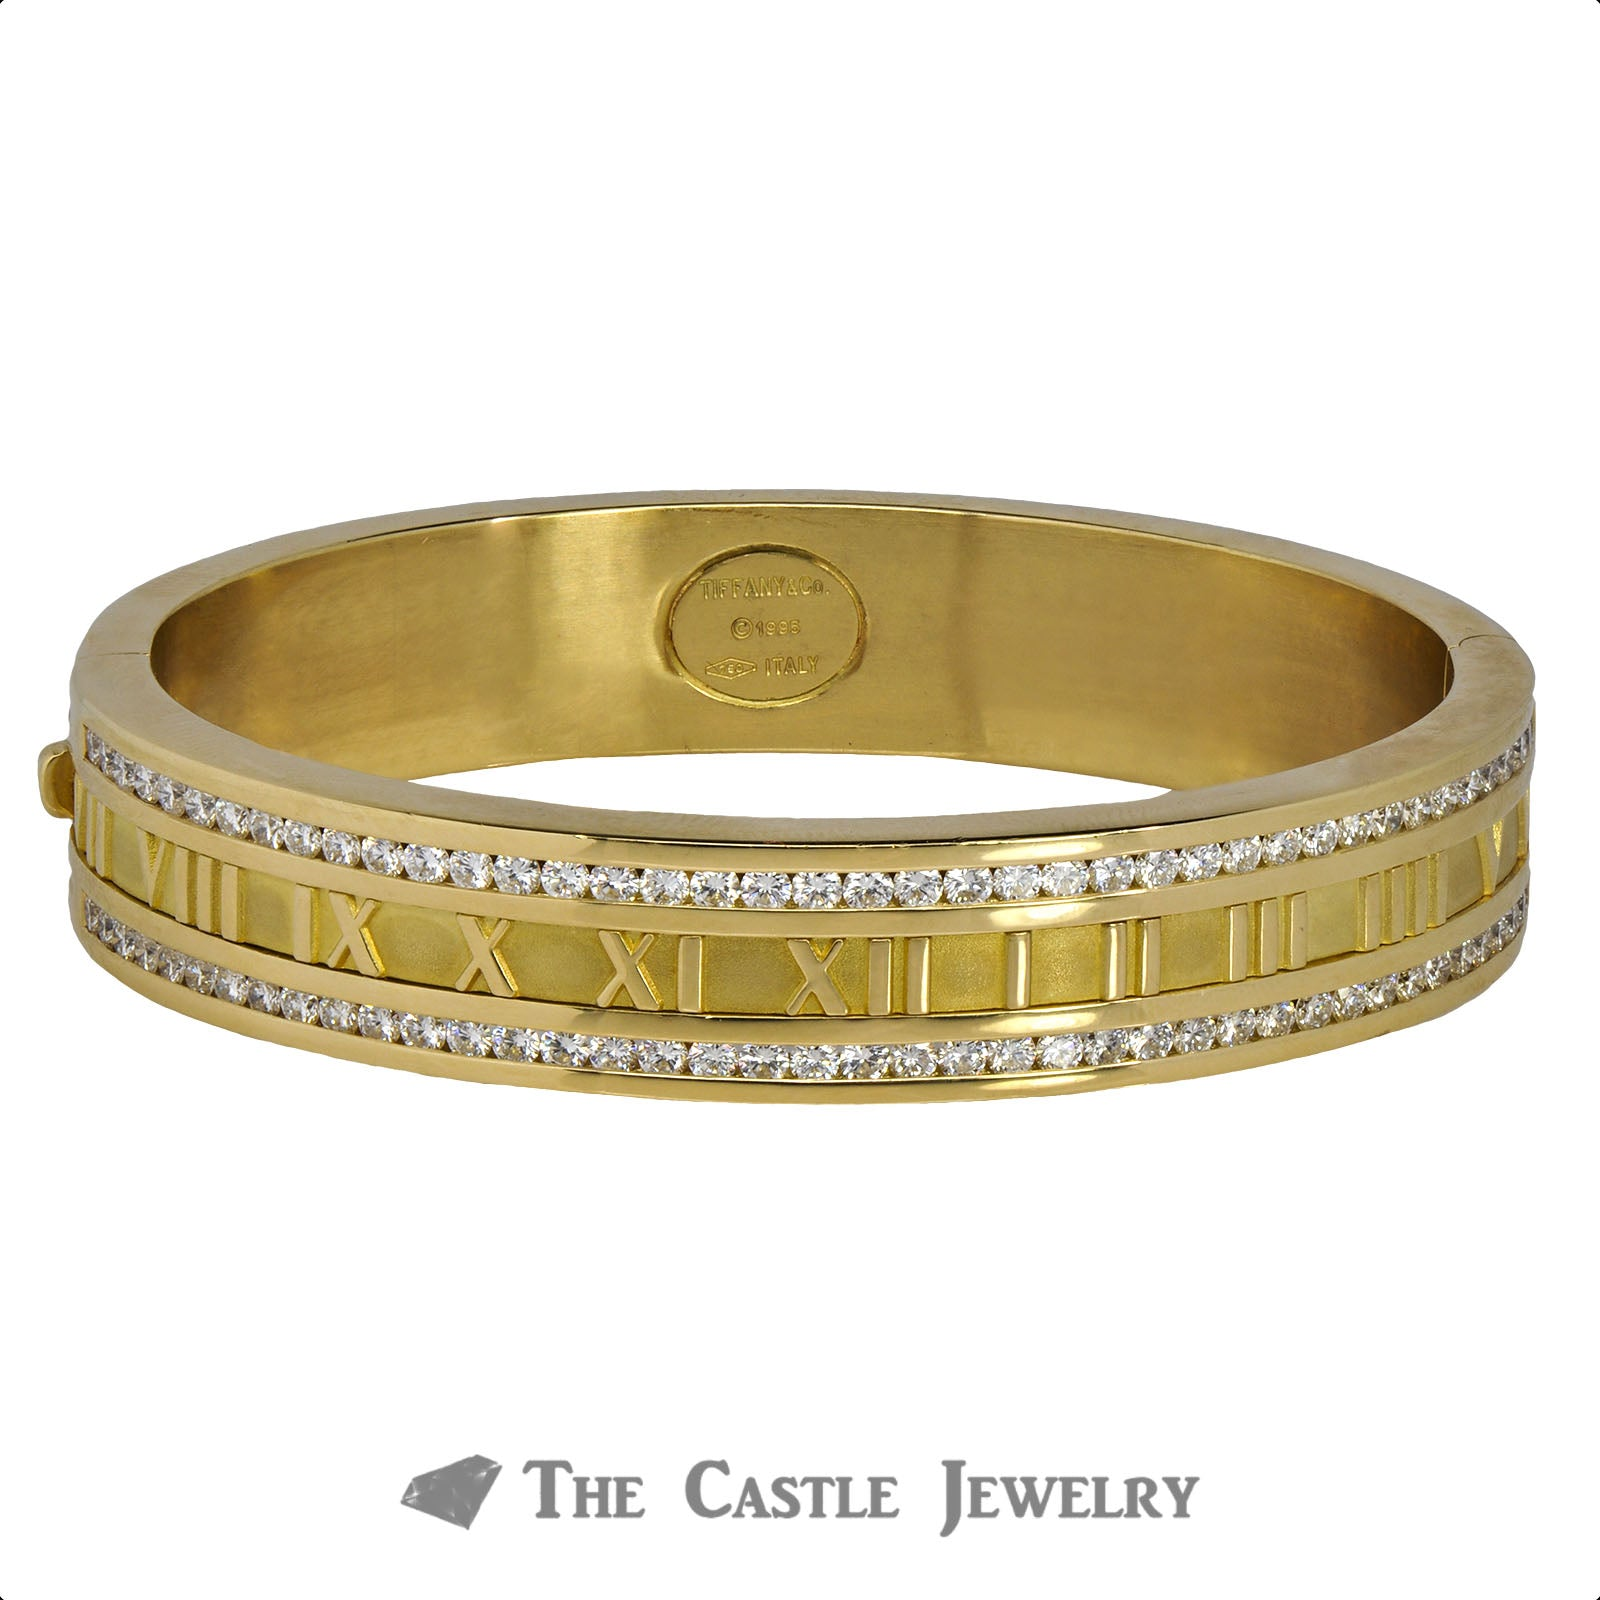 Tiffany & Co. Atlas Bangle Bracelet with Roman Numerals